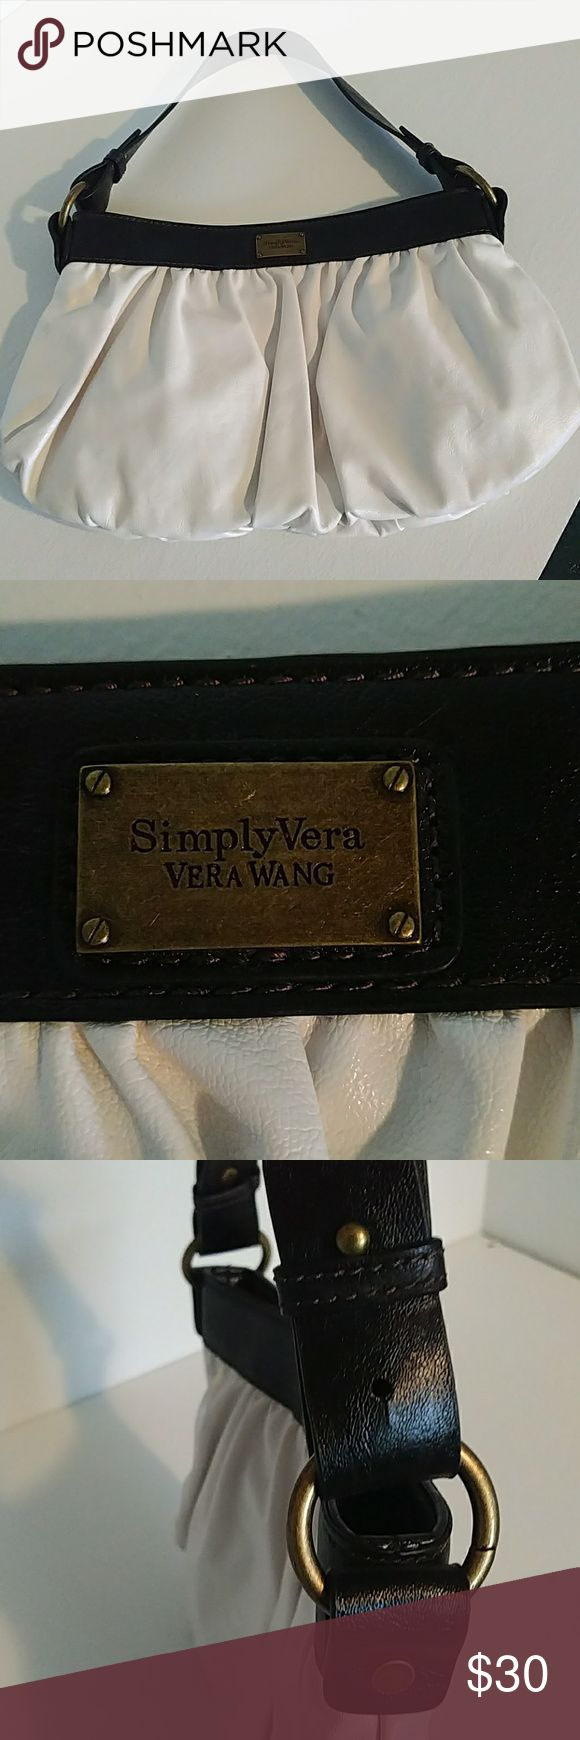 Simply Vera Vera Wang.  Beautiful purse!! Simply Vera Vera Wang.  Beautiful purse!! White with black trim and strap. This purse is very nice! I used it once for about 3 hours . Fits everything a gal could need. Simply Vera Vera Wang Bags Hobos